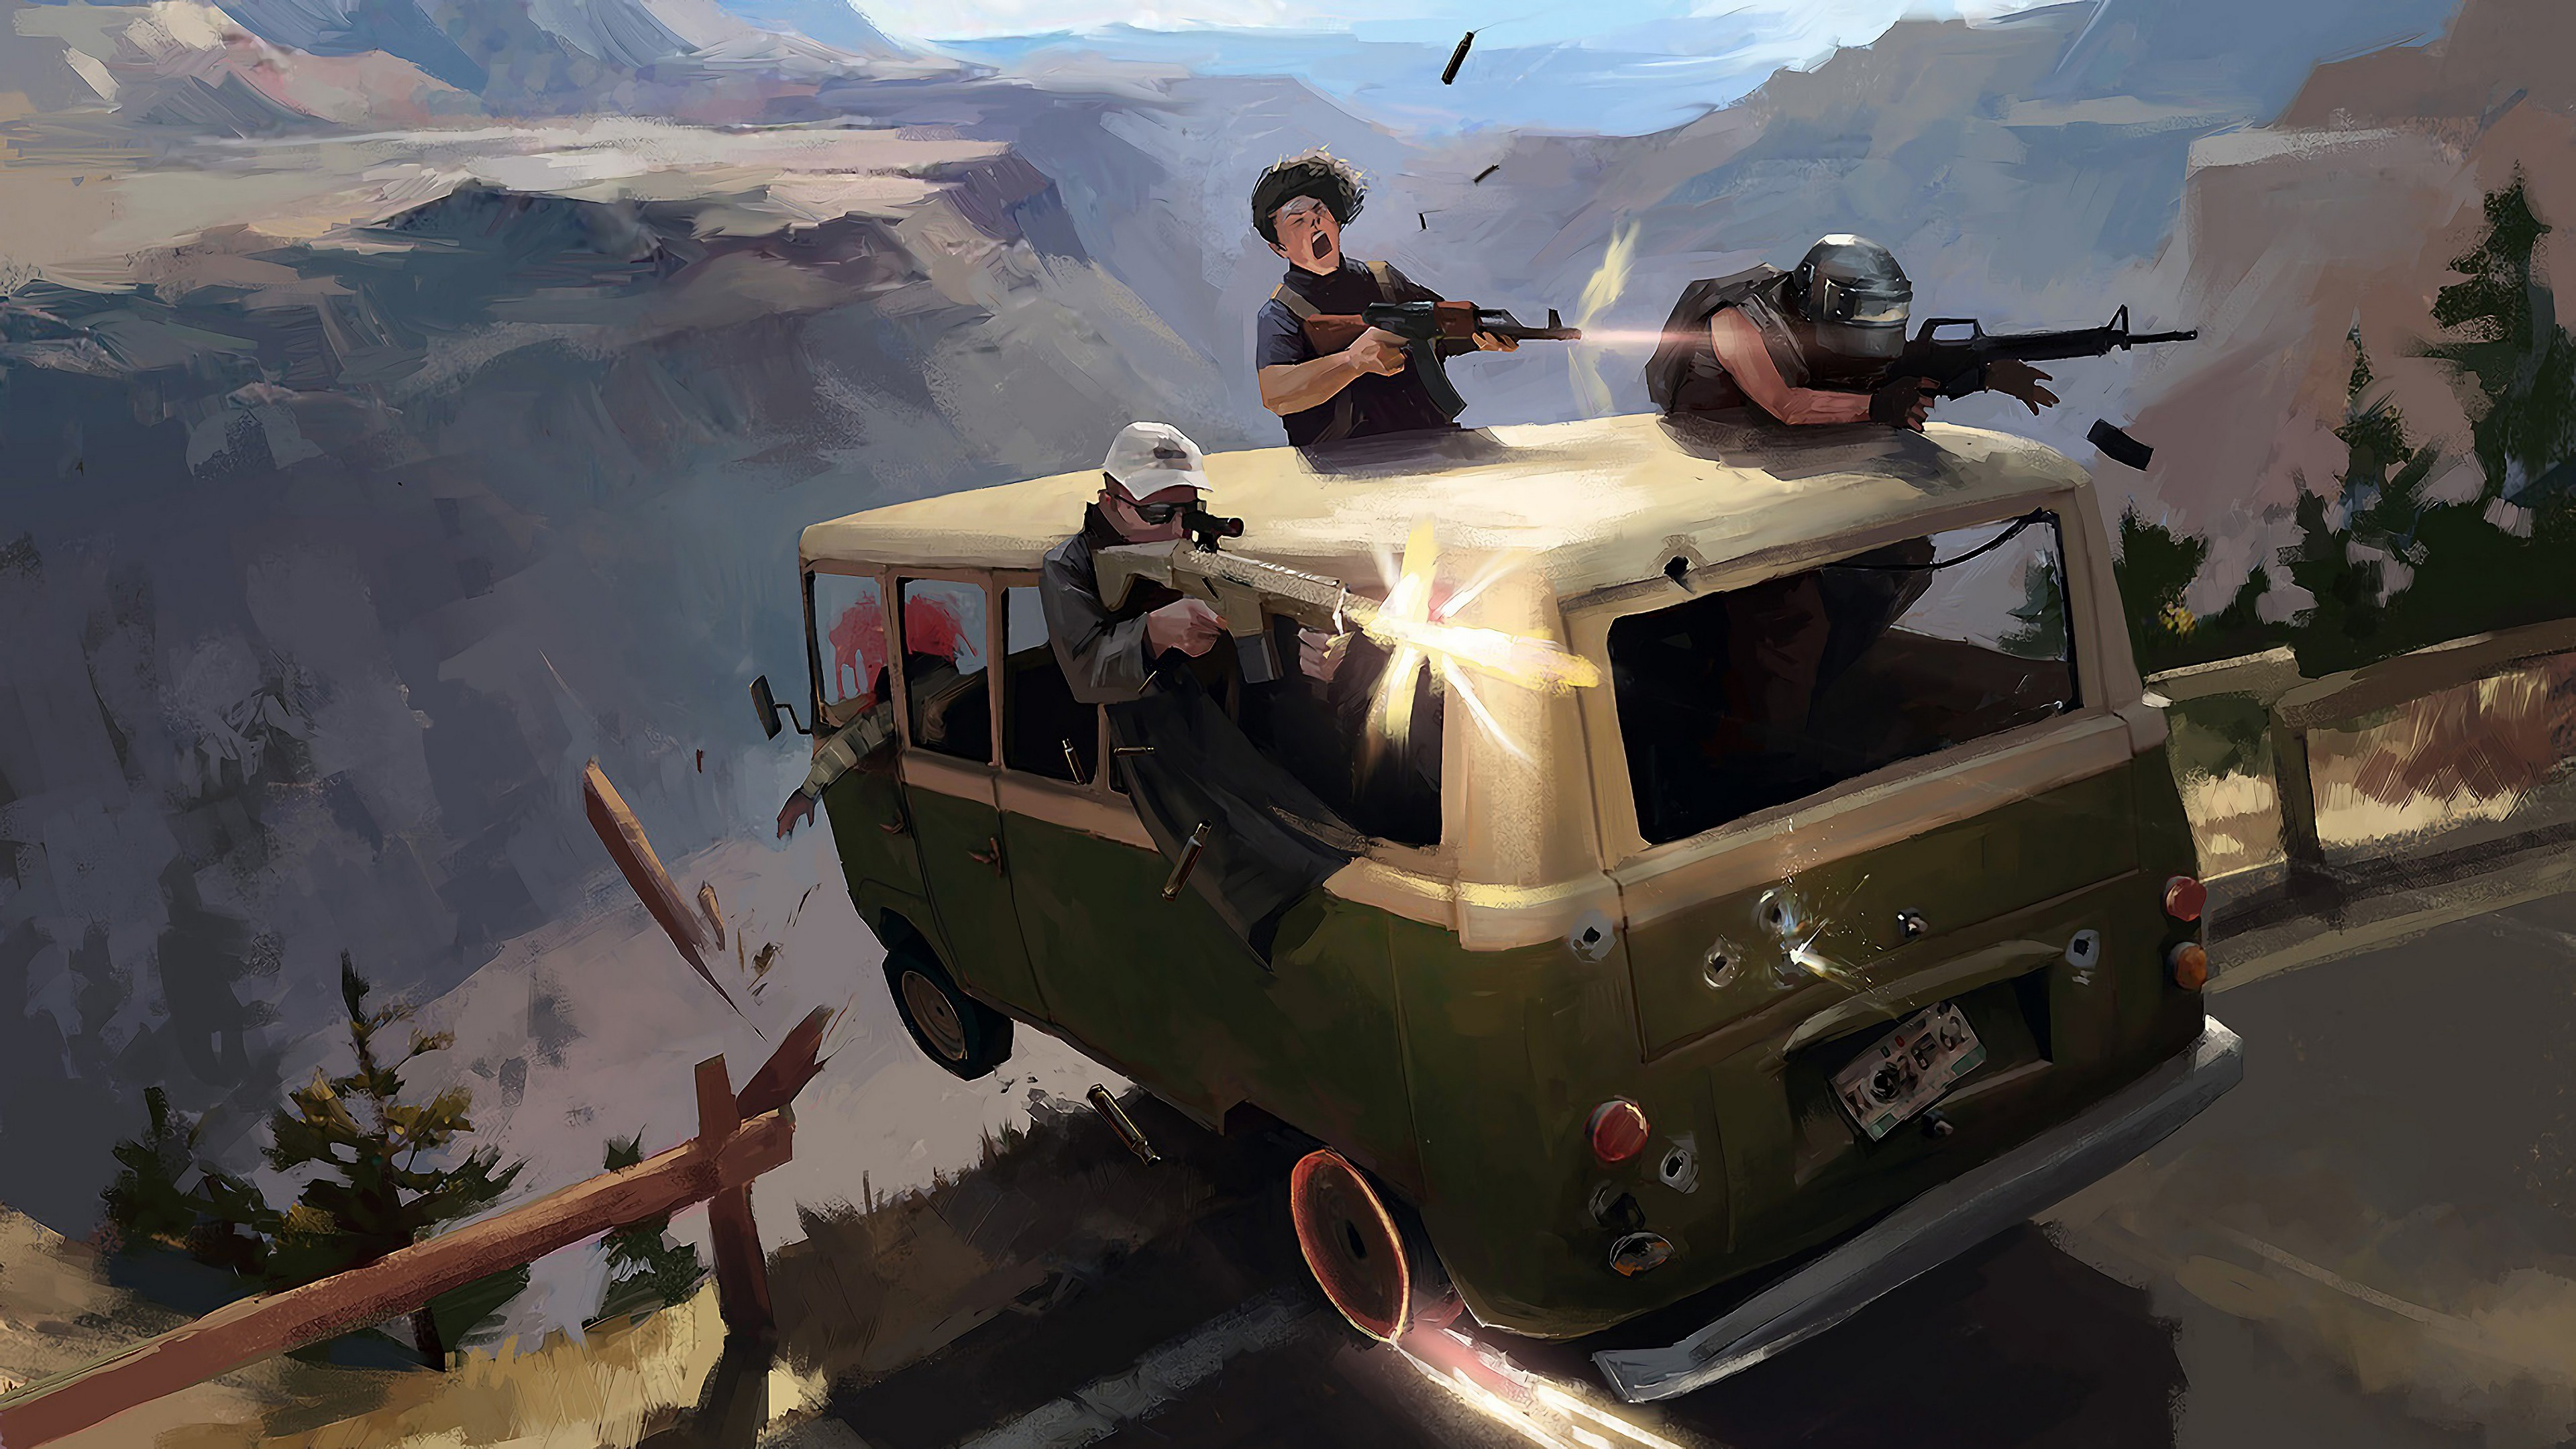 Pubg Minibus Attack 4k pubg wallpapers, playerunknowns ...